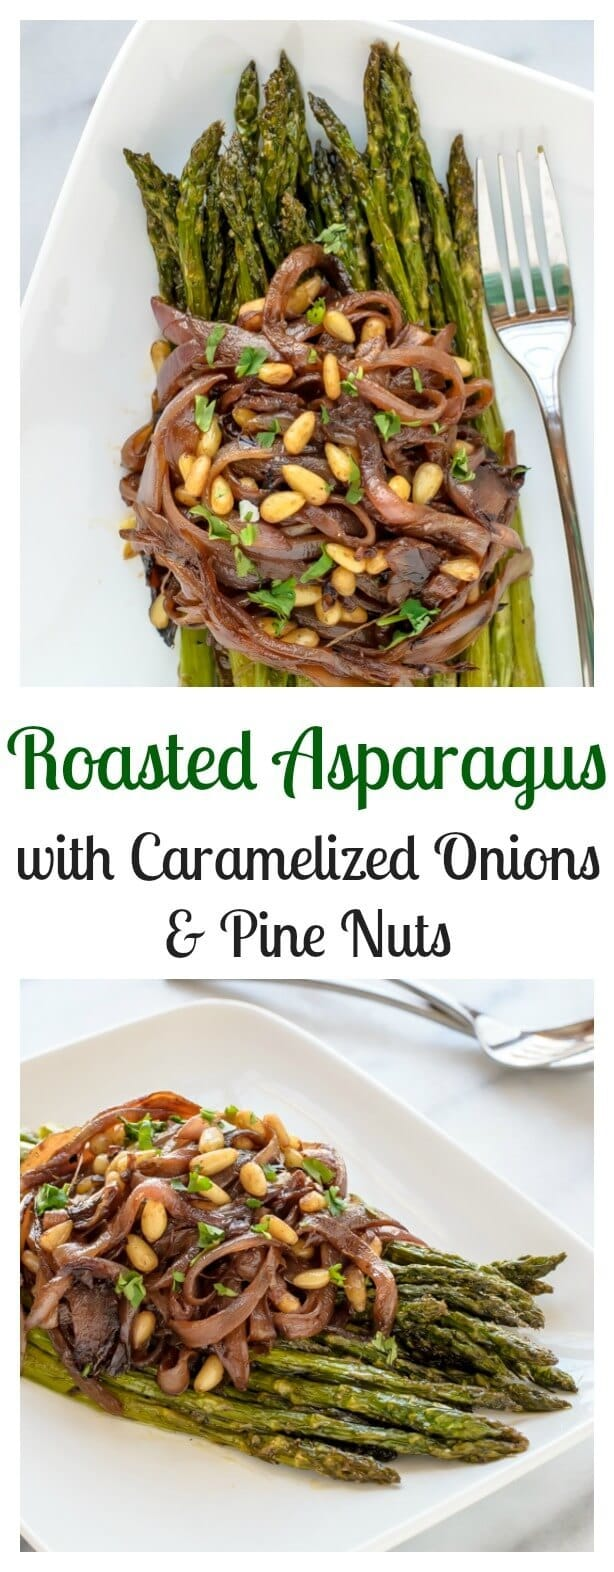 Roasted Asparagus with Caramelized Onions and Pine Nuts. An easy elegant spring side dish!